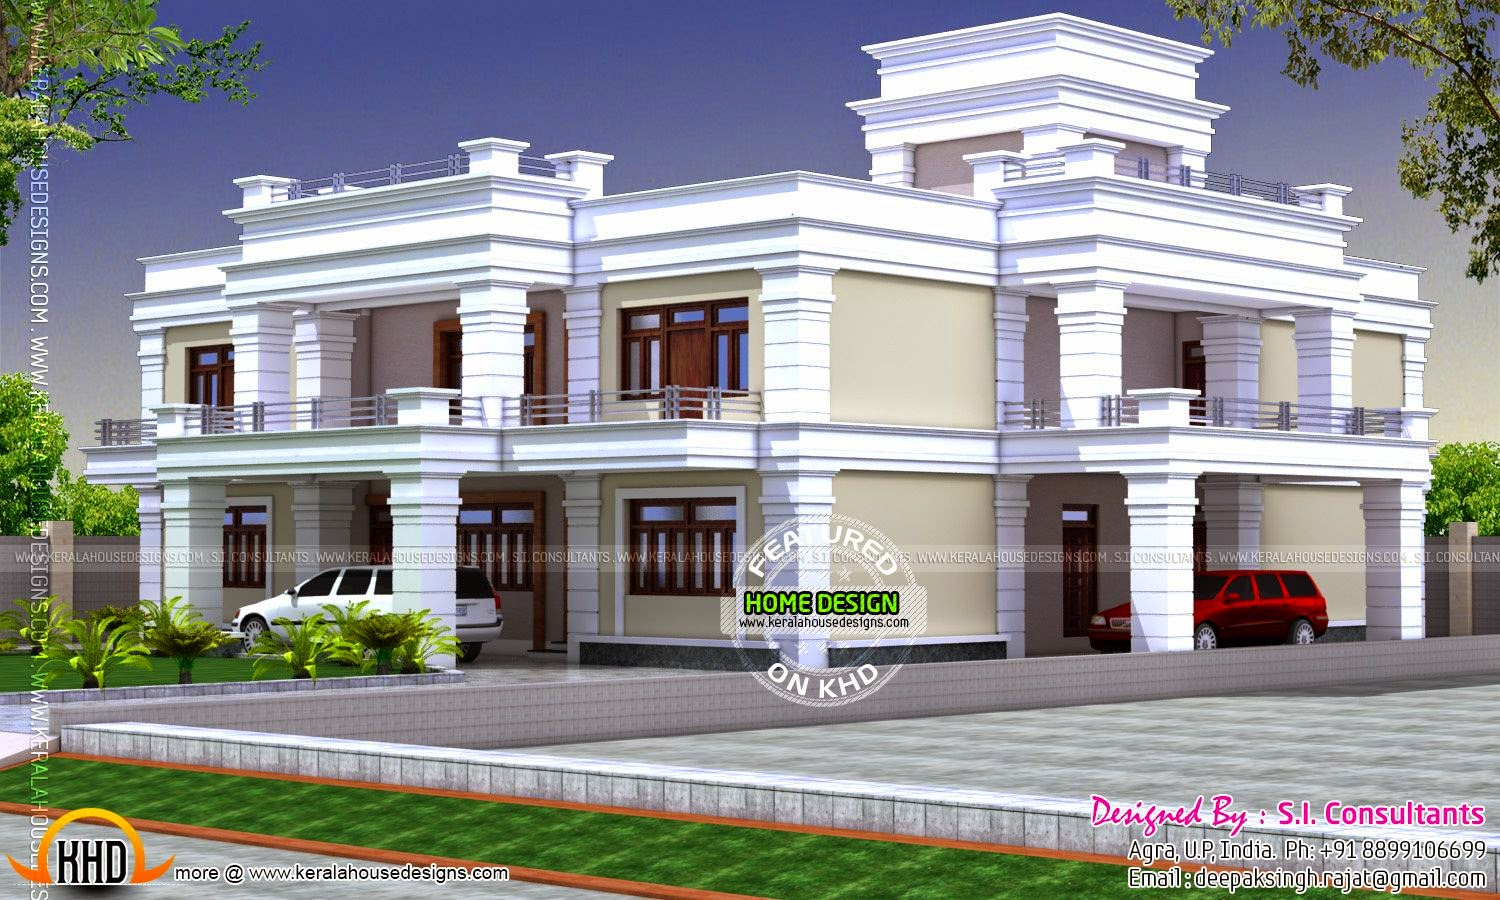 Decorative flat roof house kerala home design and floor House plan flat roof design